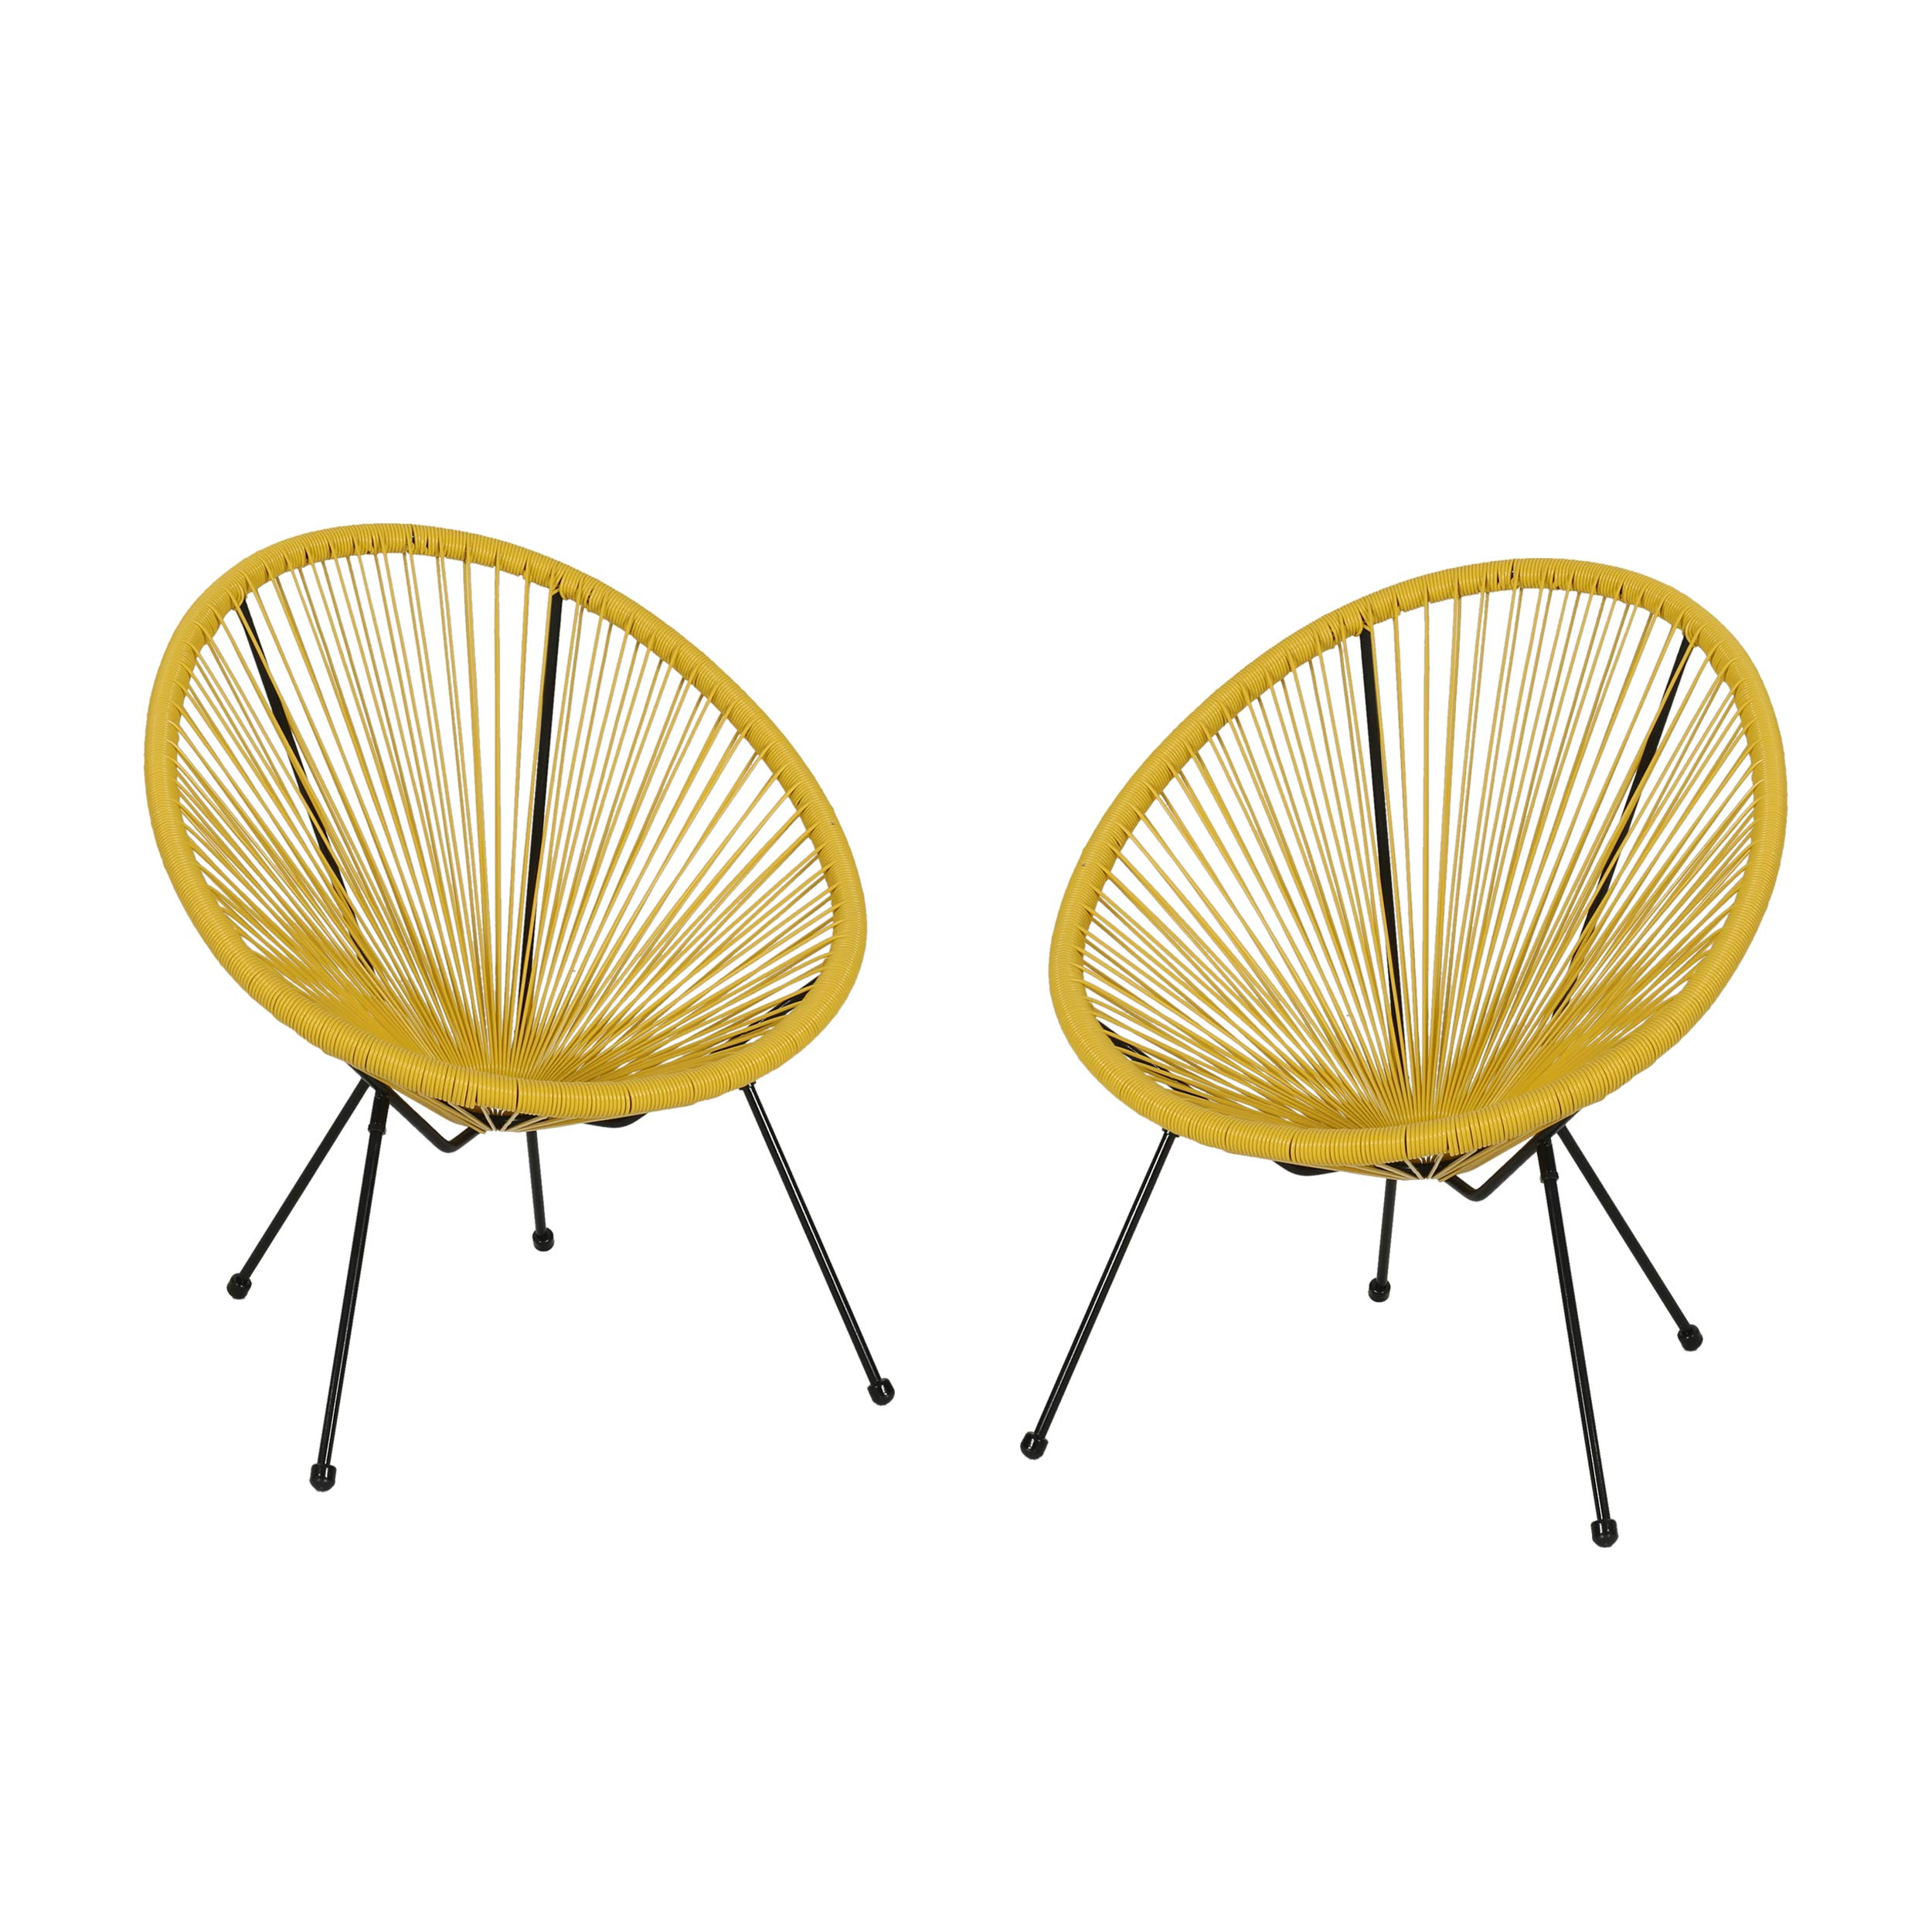 Great Deal Furniture Major Outdoor Hammock Weave Chair with Steel Frame (Set of 2) - Yellow and Black Finish